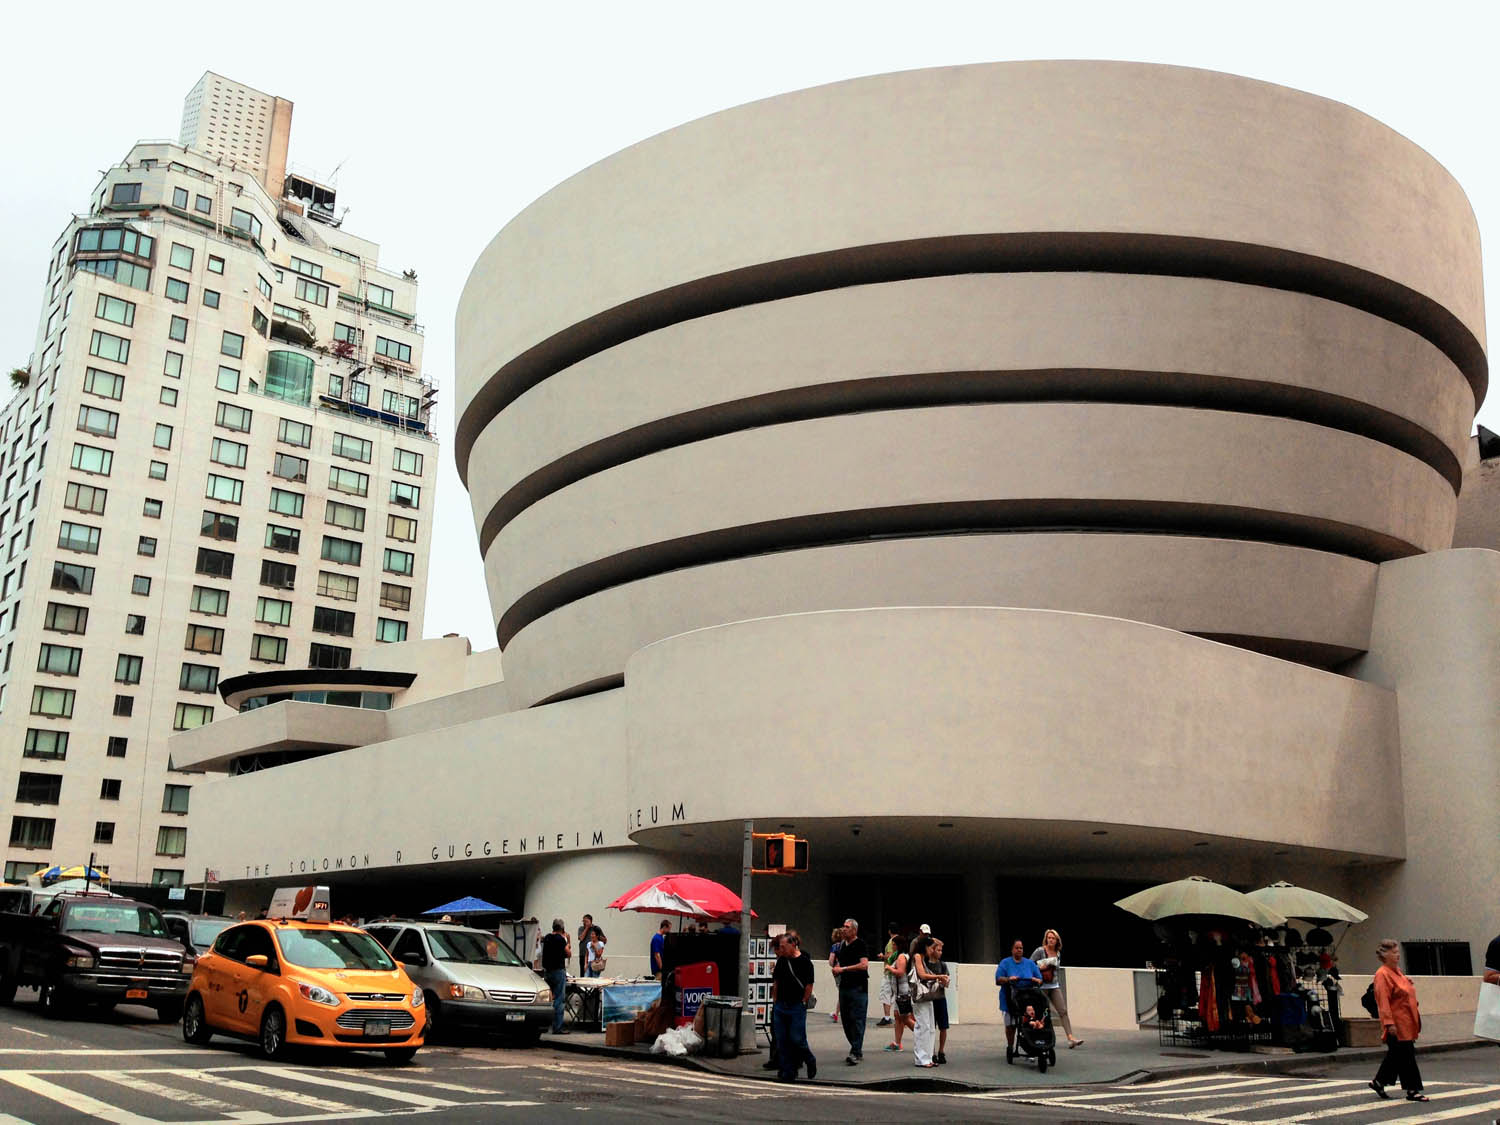 the best museum in new york city